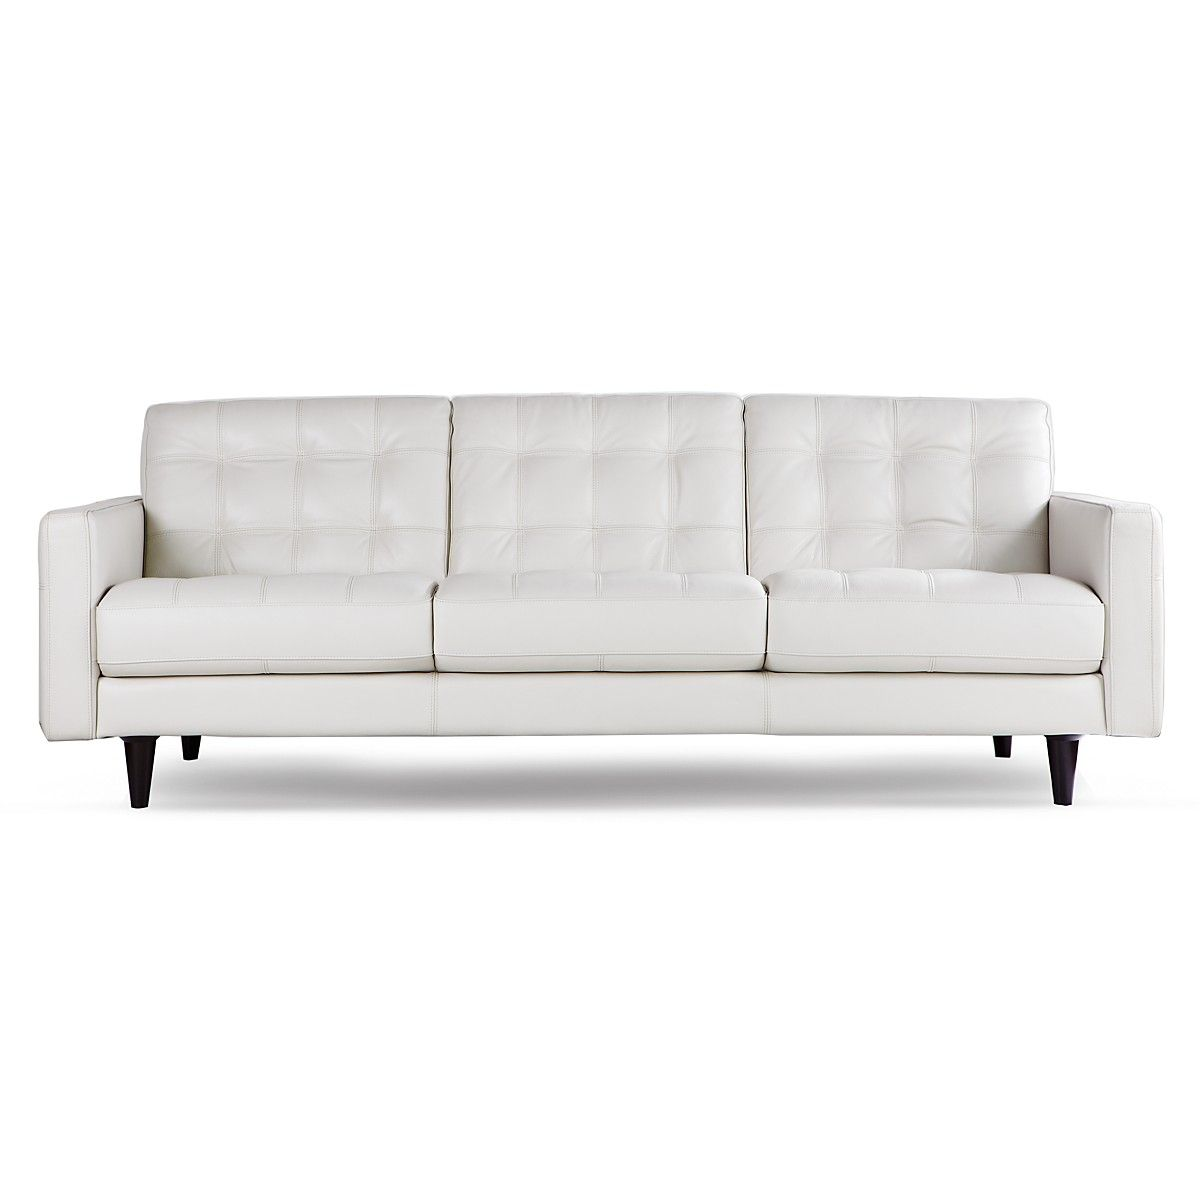 Sleek Leather Couch Bloomingdales Sofa Leather Sofa Bloomingdale S Thesofa